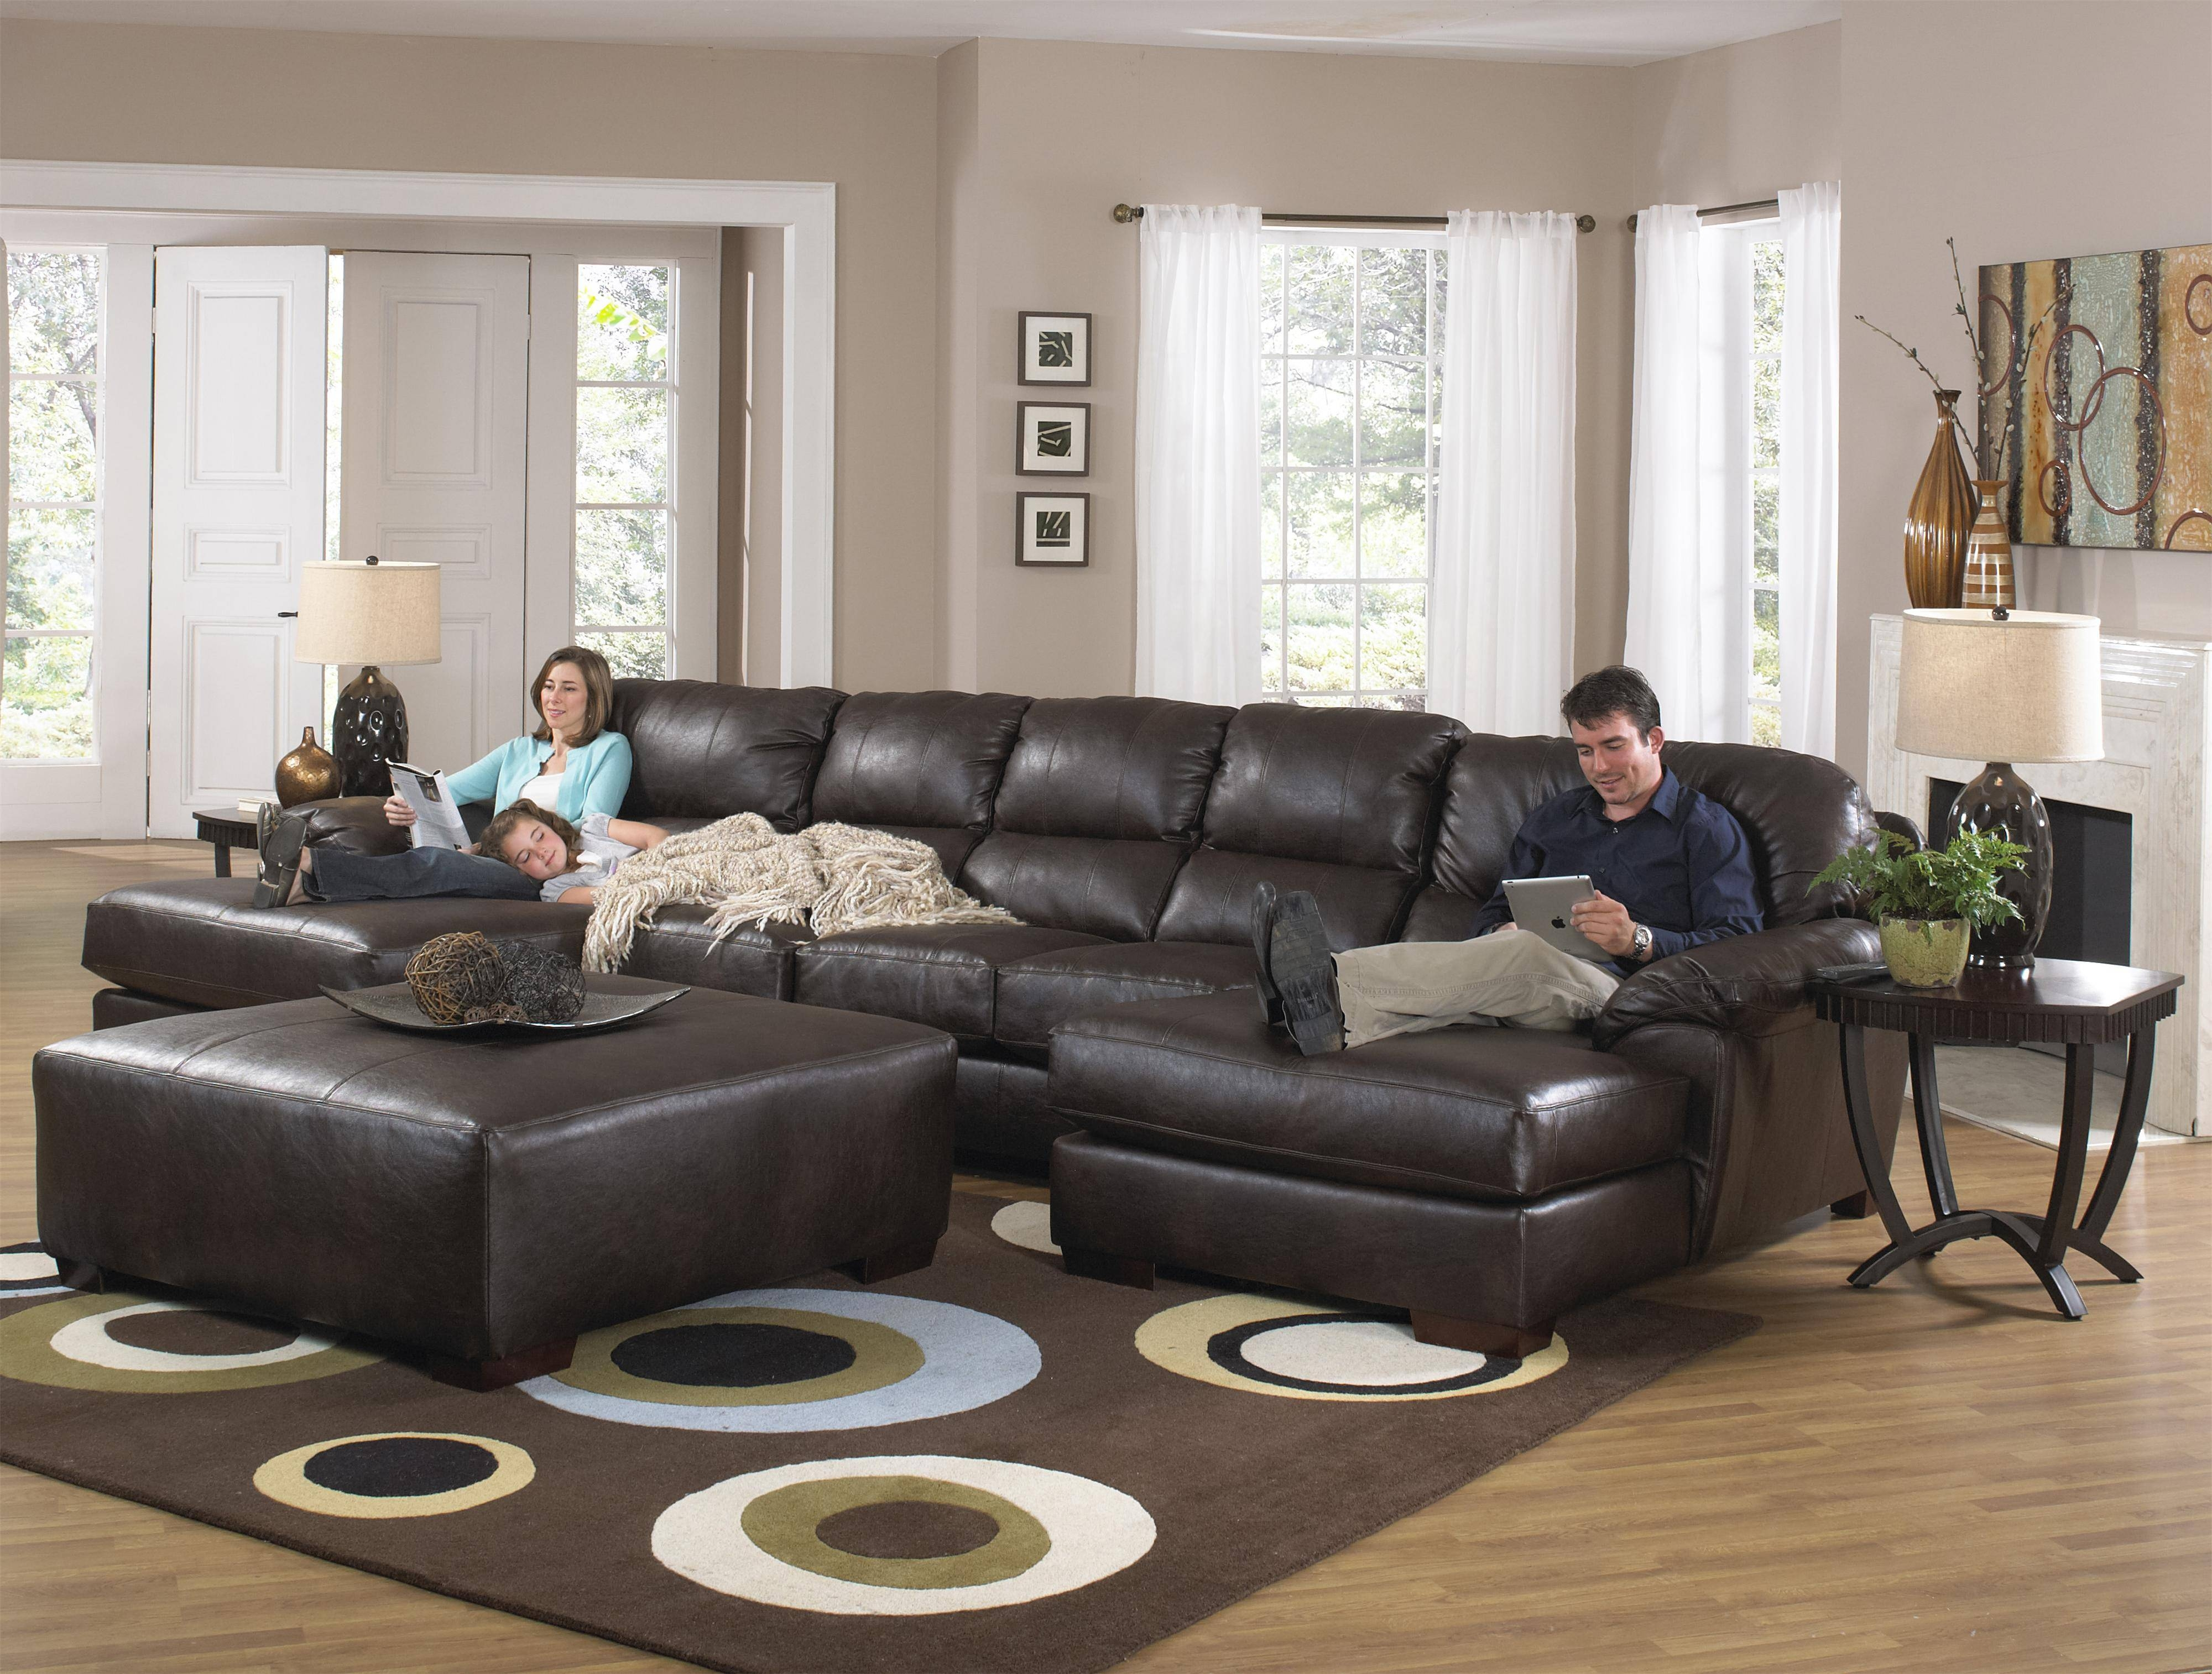 Long Sectional Sofa With Chaise | Tehranmix Decoration with Long Sectional Sofa With Chaise (Image 20 of 30)